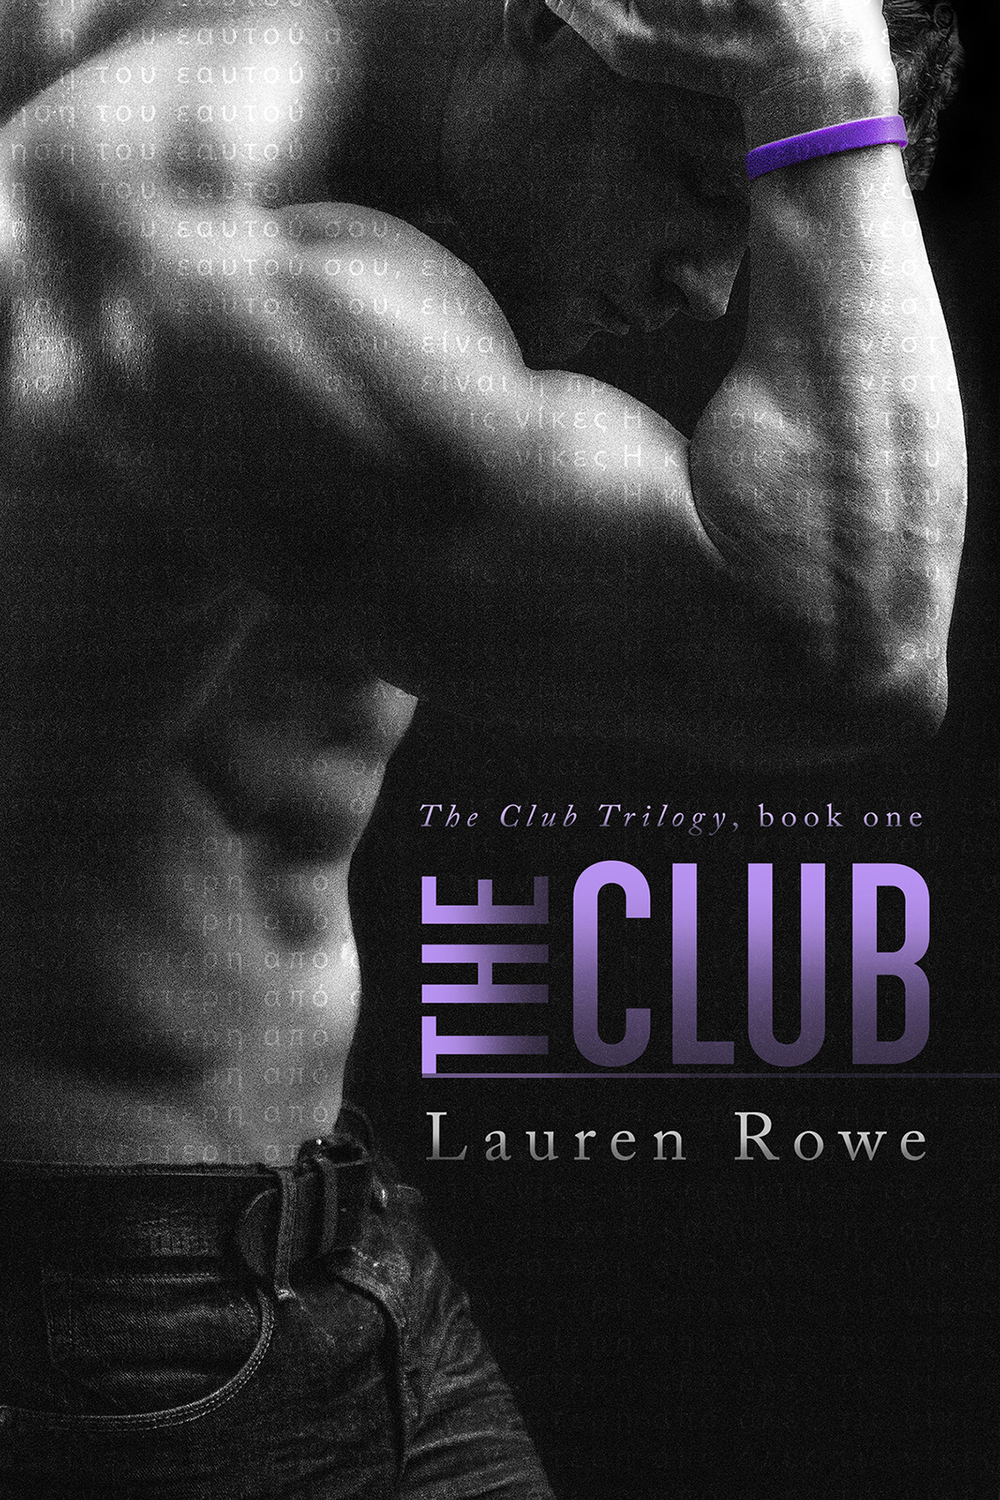 theclubtrilogycover-laurenrowe